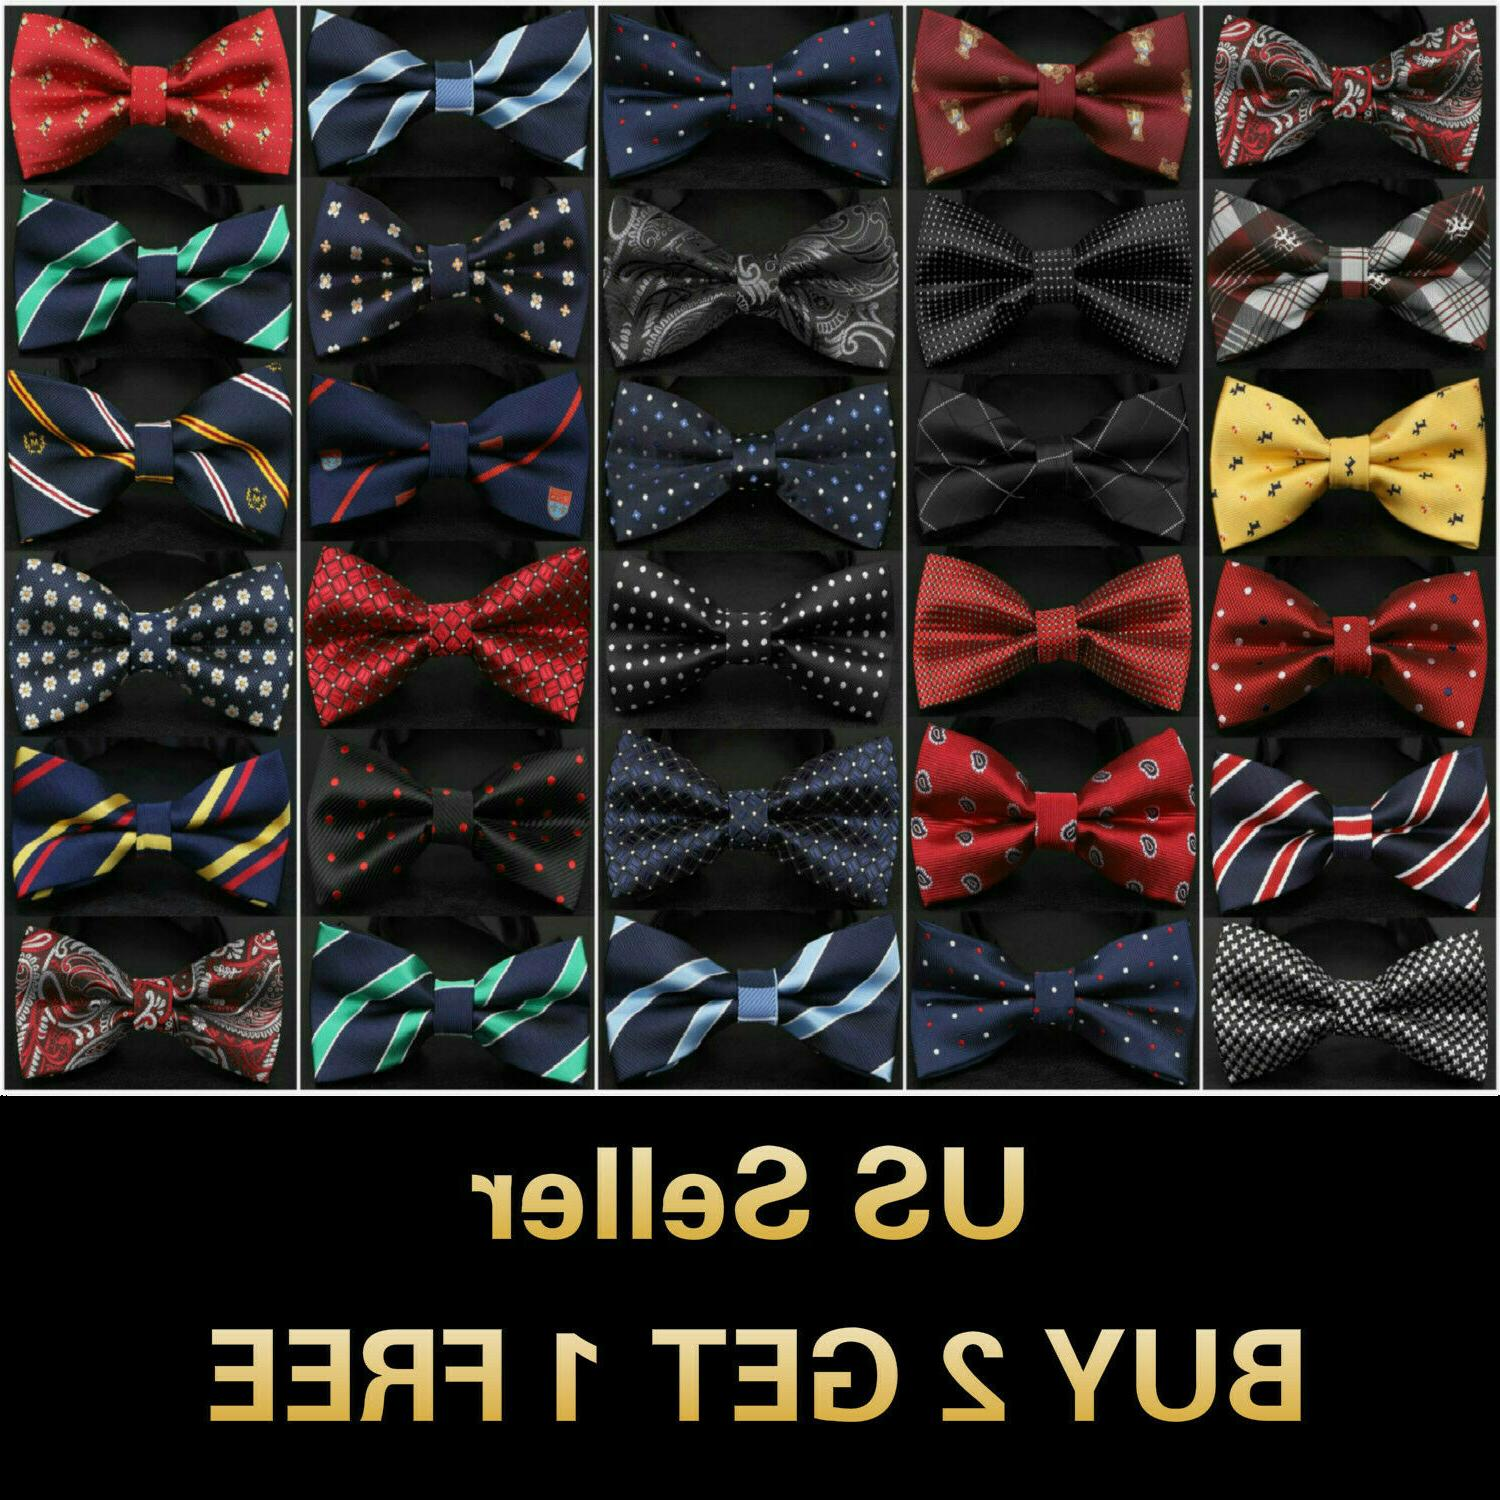 26 styles bow tie classic mens adjustable